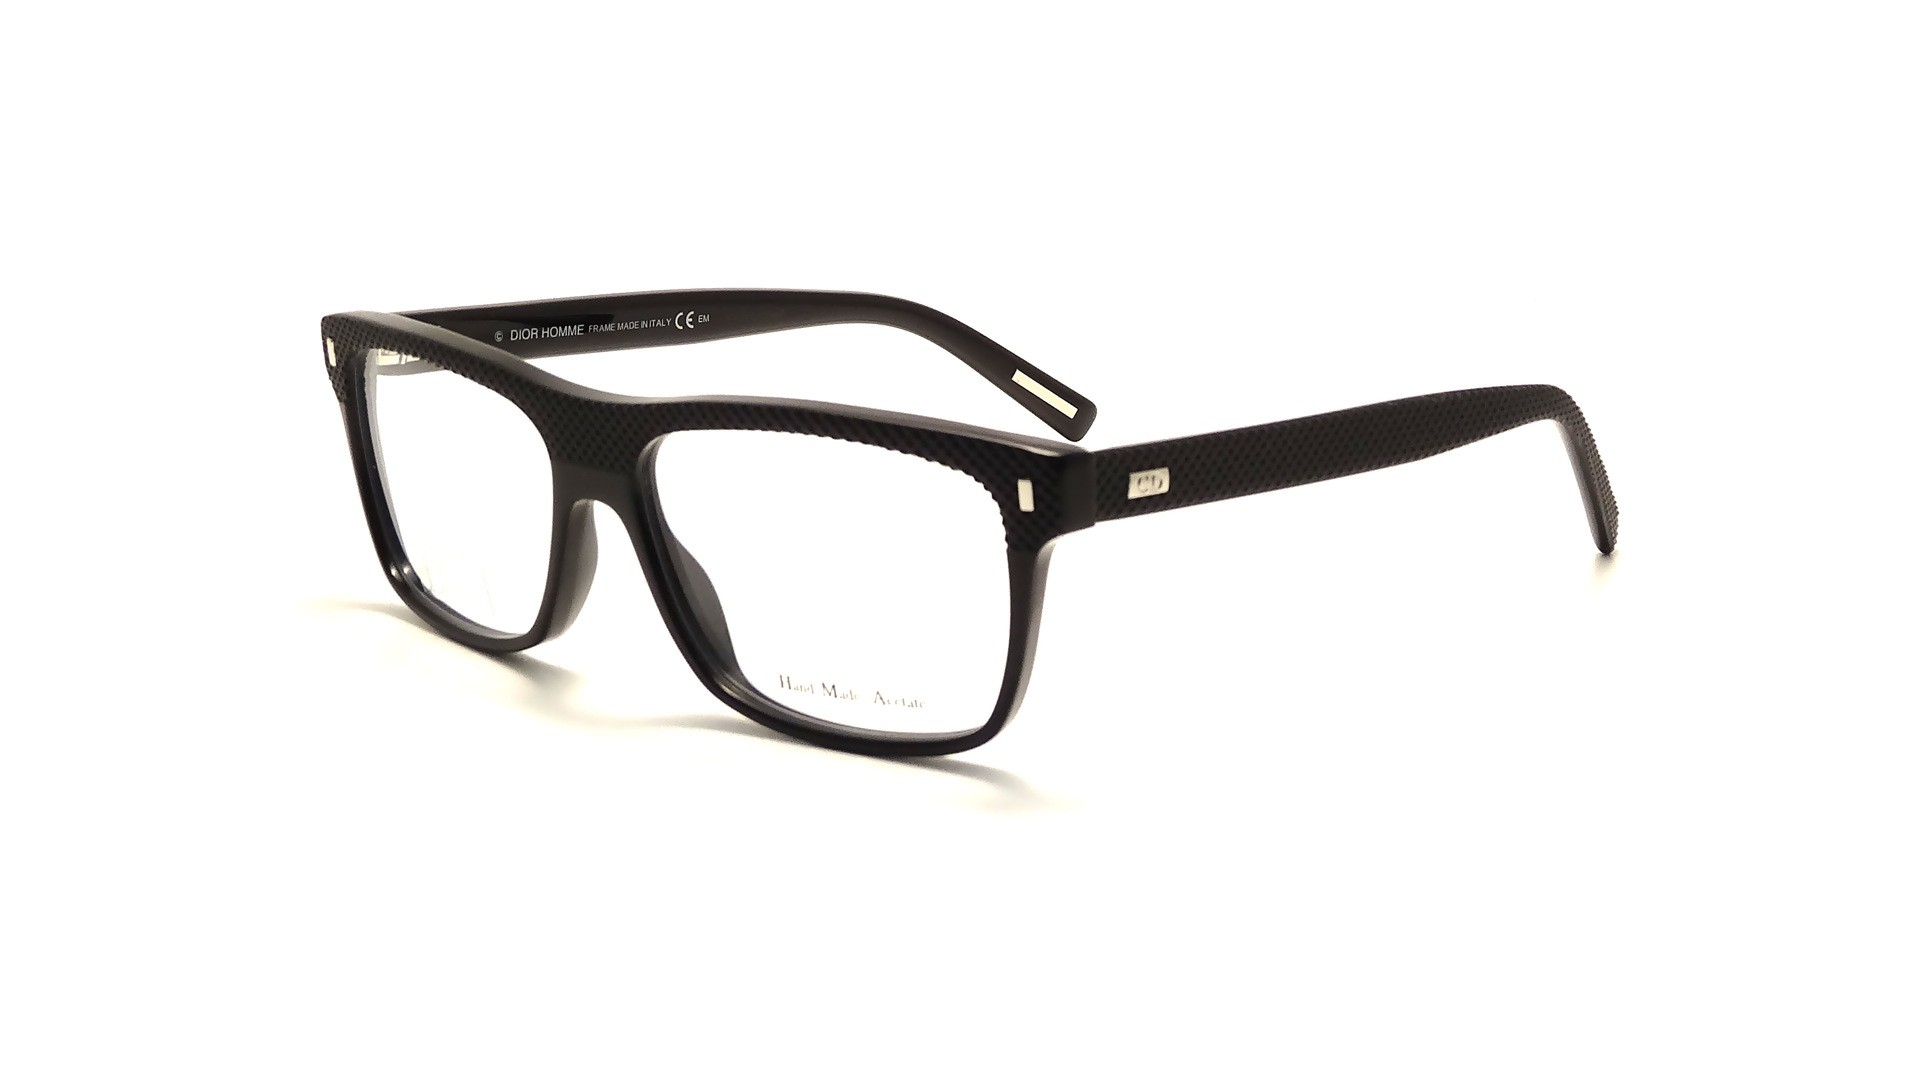 Eye glasses Dior Blacktie168 807 Black Medium